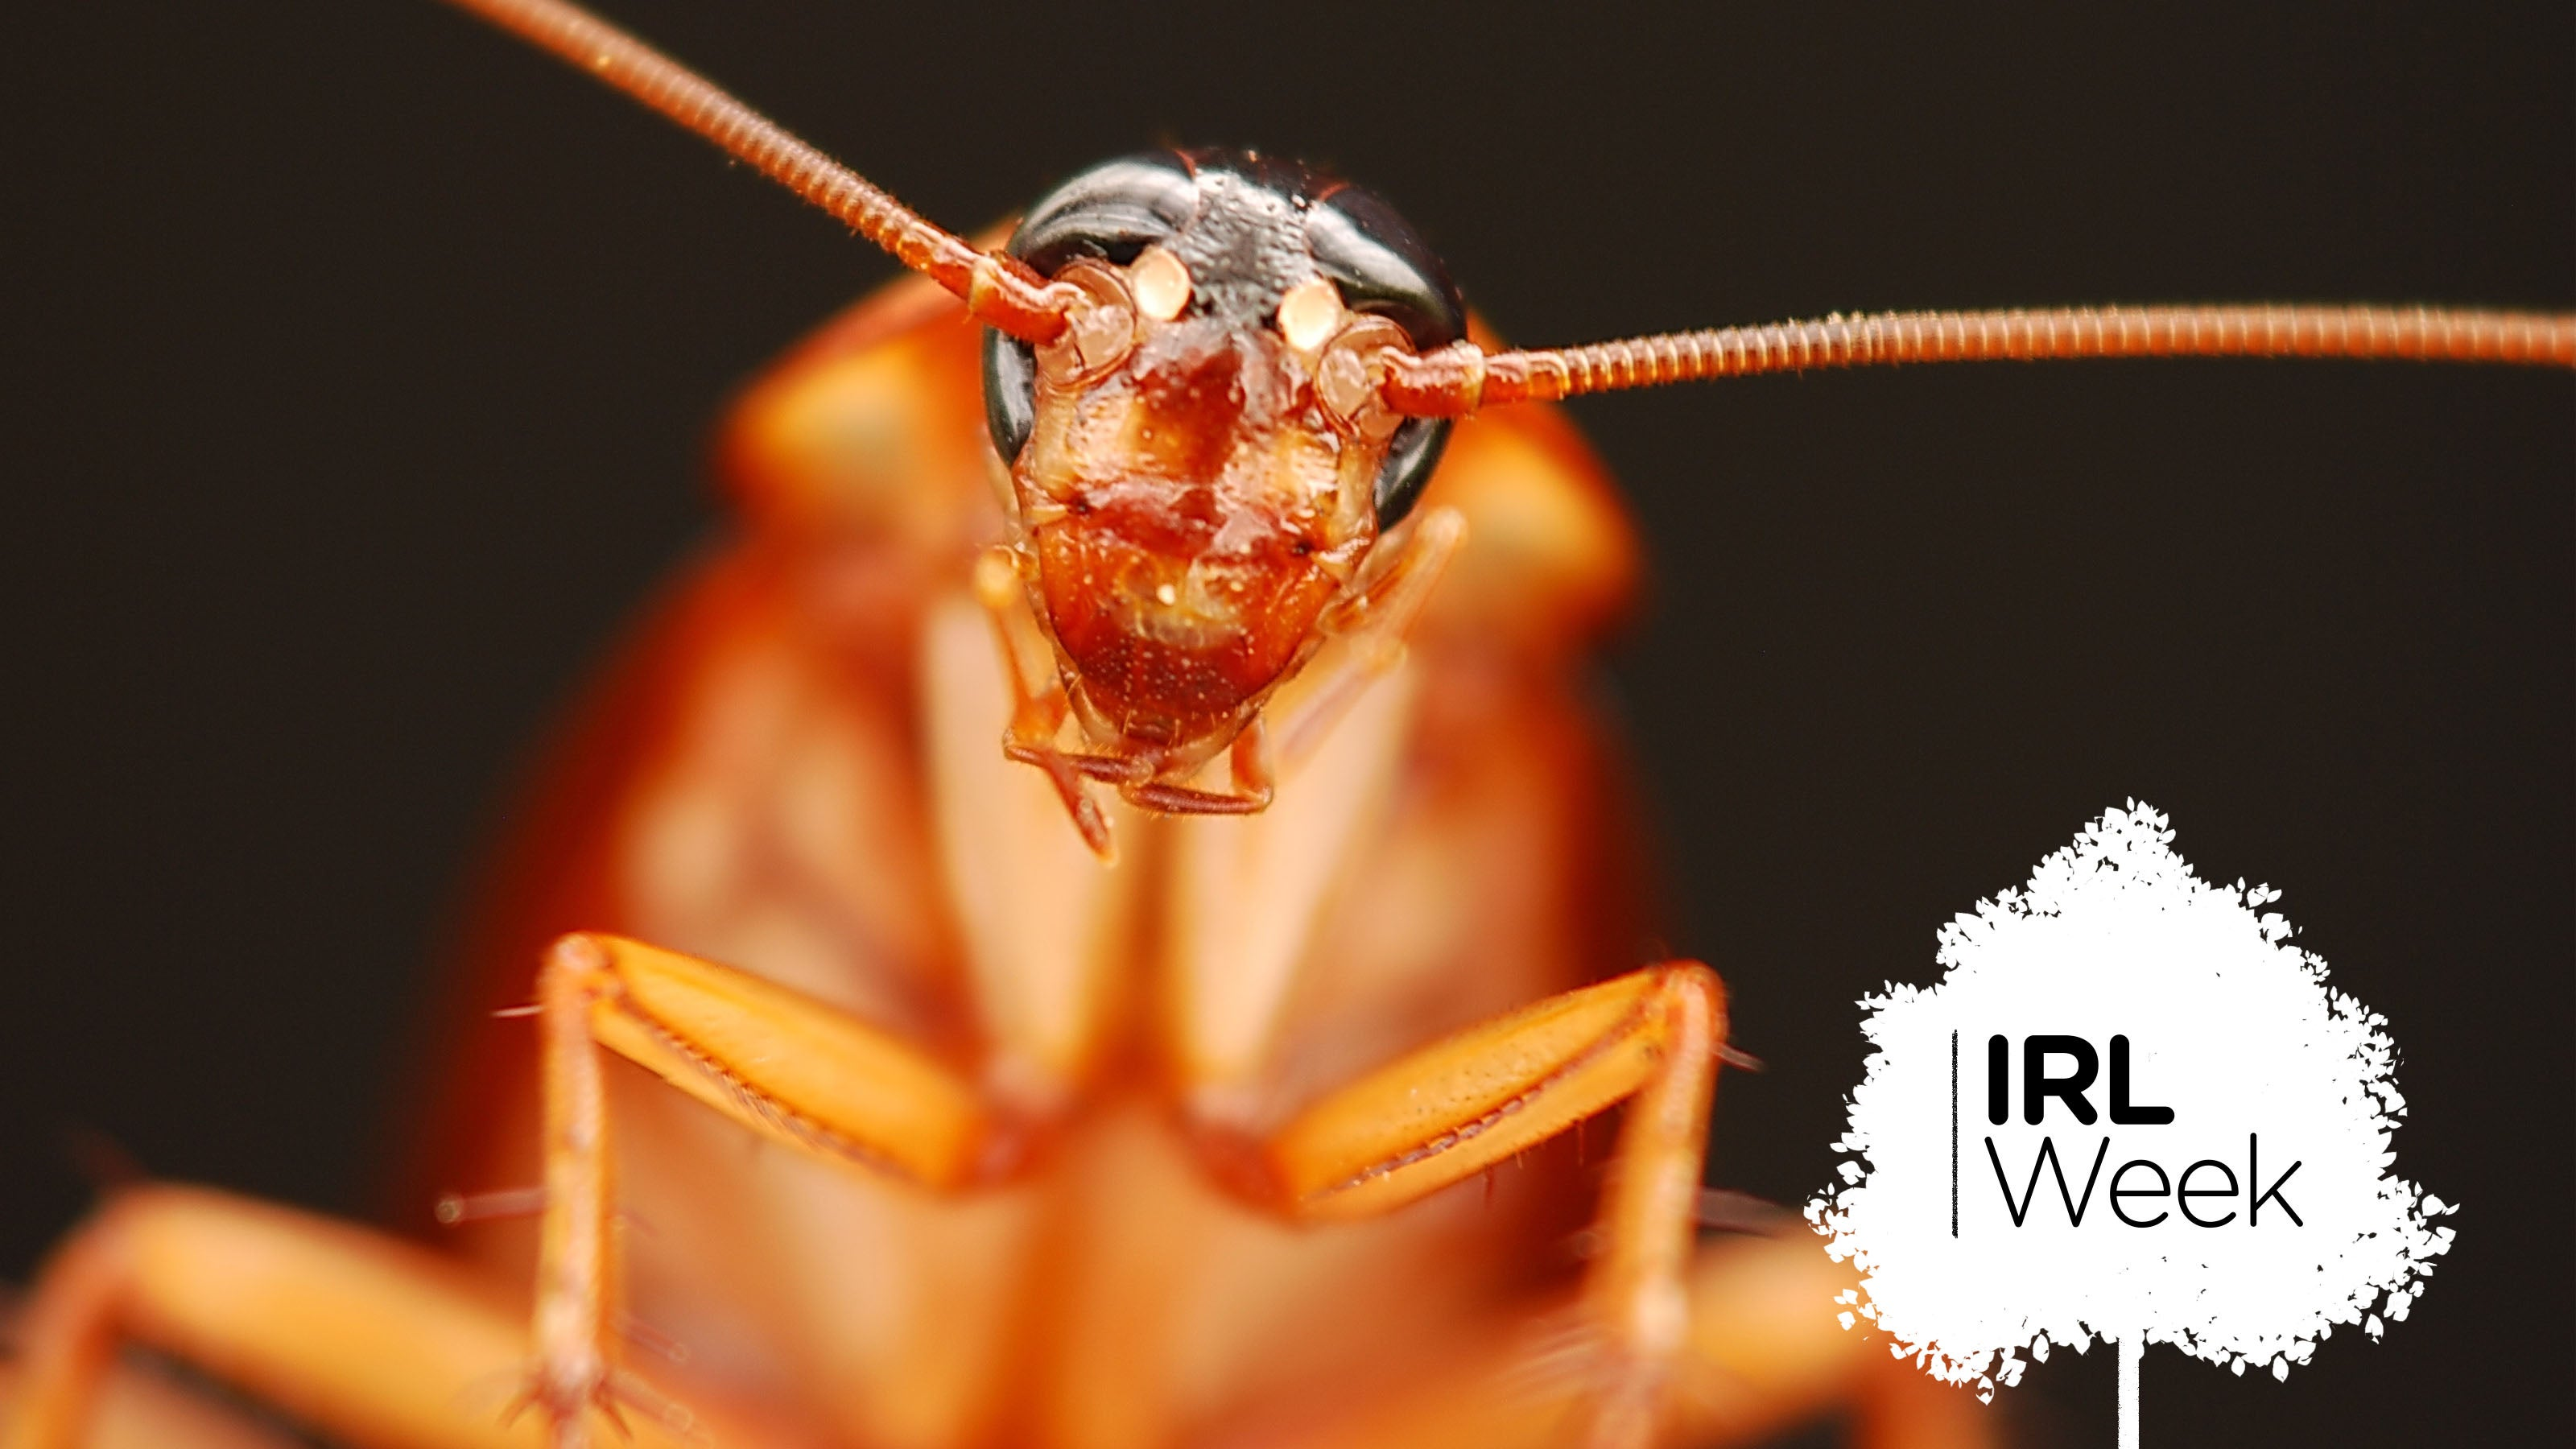 Spiders, Poison And Boiling Water: The Best (And Worst) Ways To Kill Cockroaches